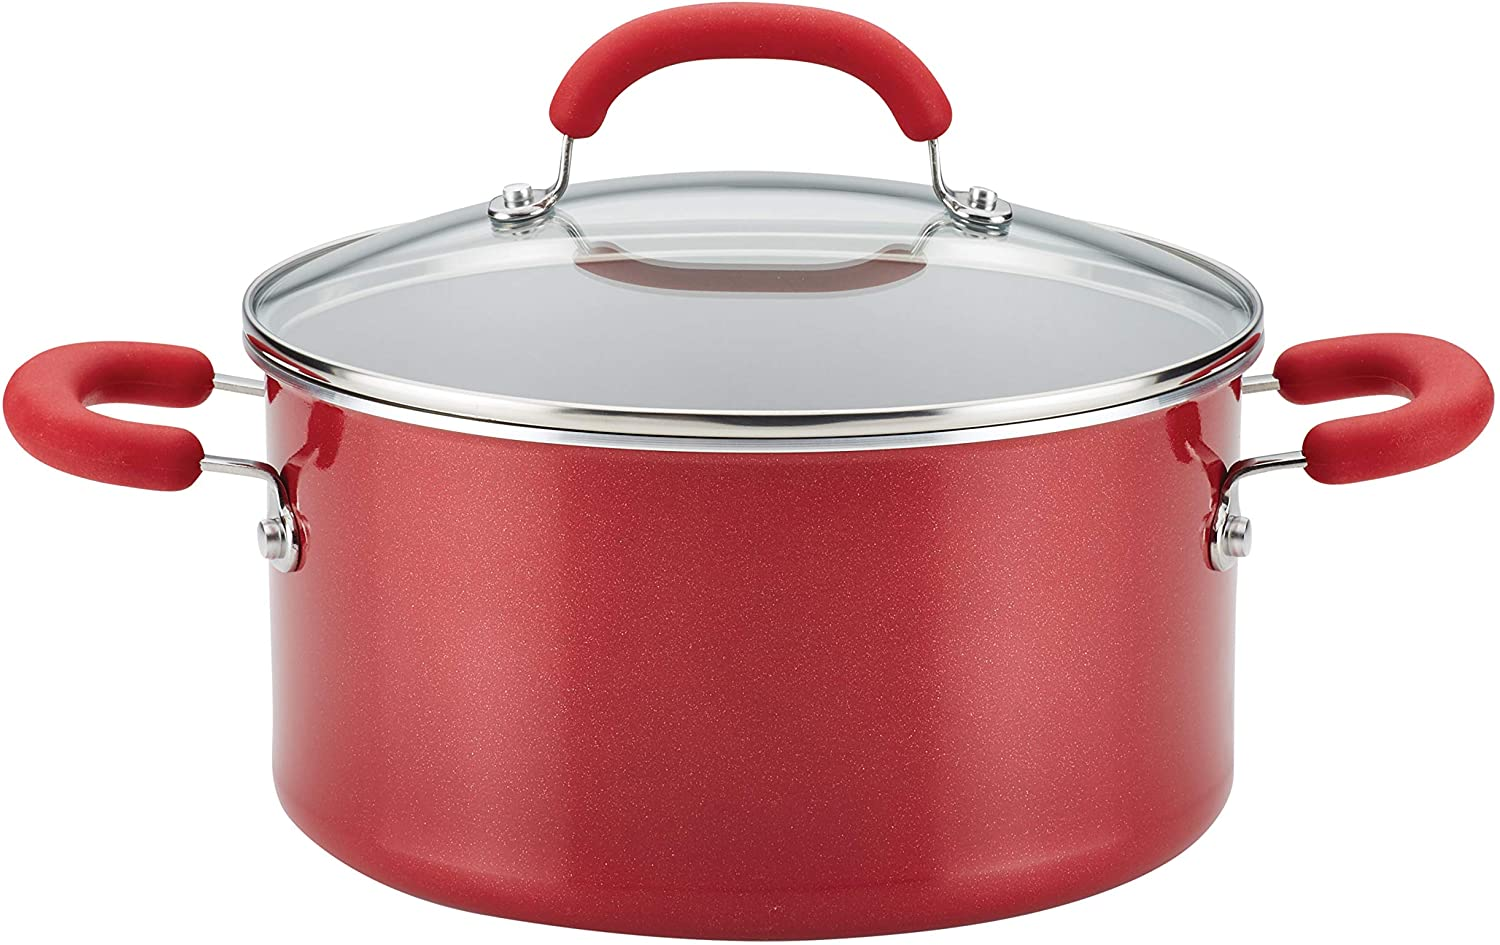 Rachael Ray 12164 Create Delicious Nonstick Stock Pot/Stockpot with Lid - 6 Quart, Red